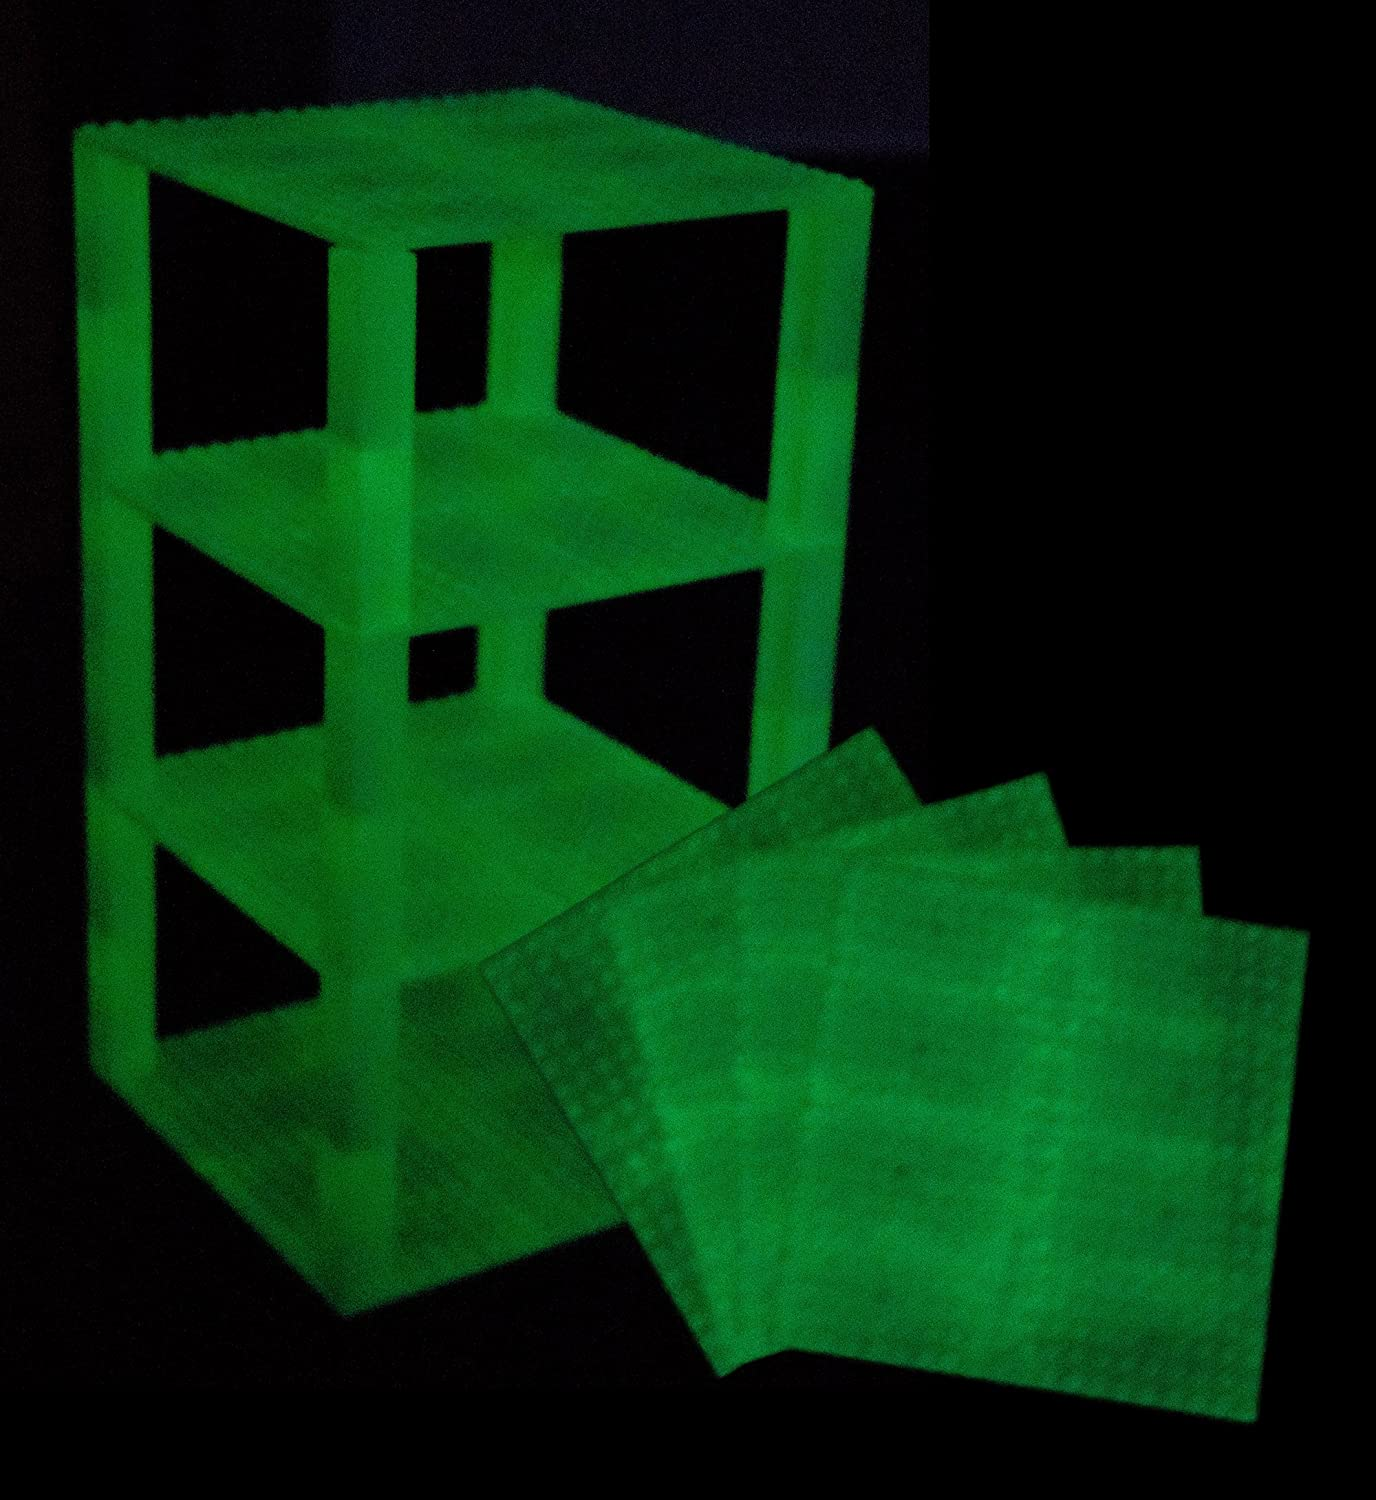 Classic Baseplates 6 x 6 Brik Tower by Strictly Briks | 100% Compatible with All Major Brands | Building Bricks for Towers and More | 4 Glow in The Dark Stackable Base Plates & 30 Stackers